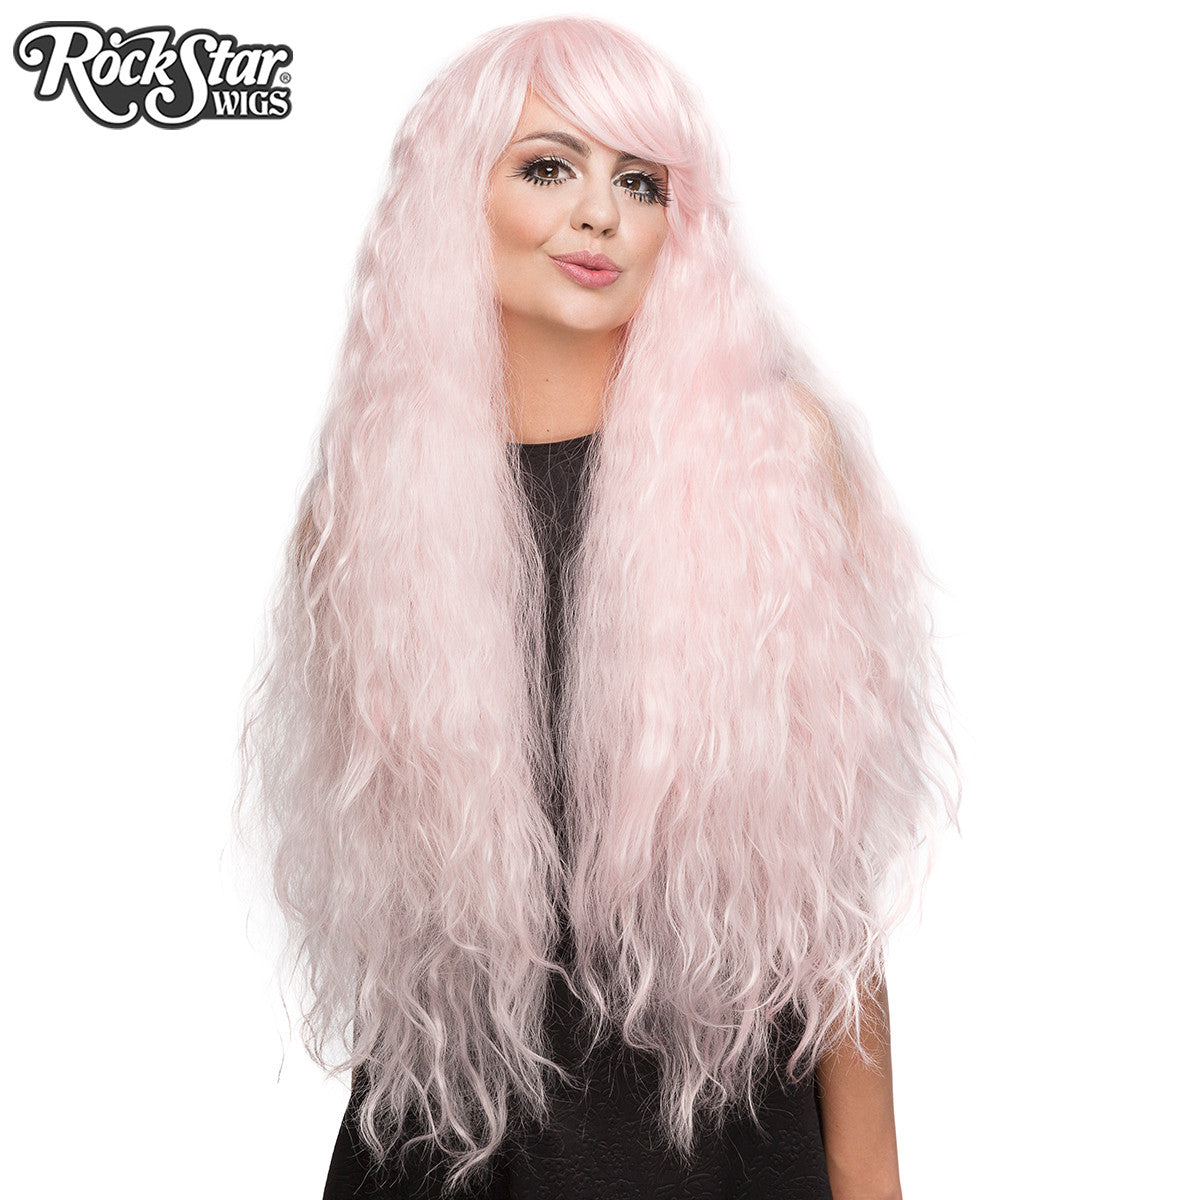 RockStar Wigs® <br> Prima Donna™ Collection - Light Powder Pink -00213